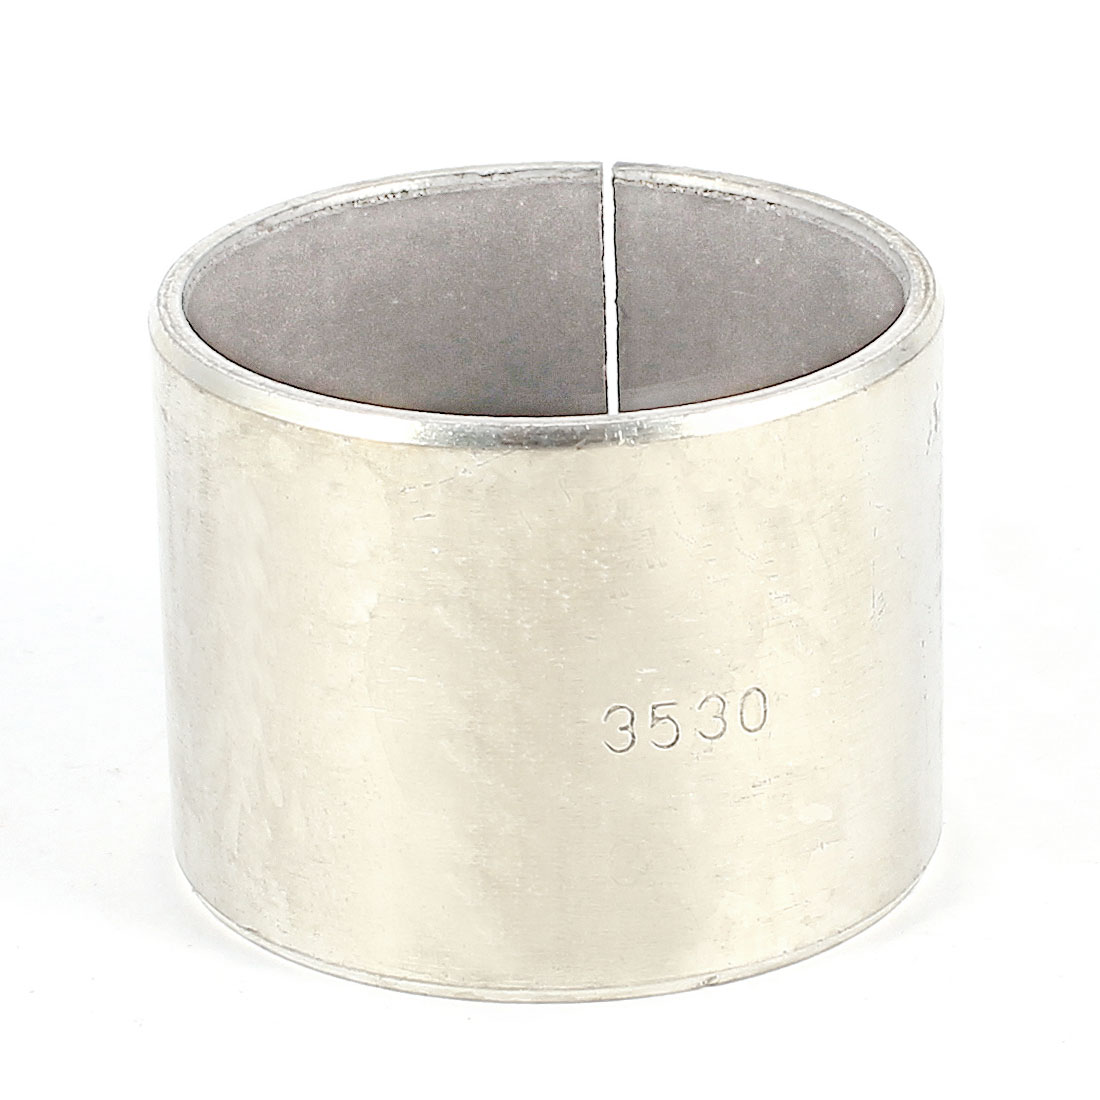 Carbon Steel Plain Oilless Bearing Sleeve Composite Bushing 3530 35mm x 30mm